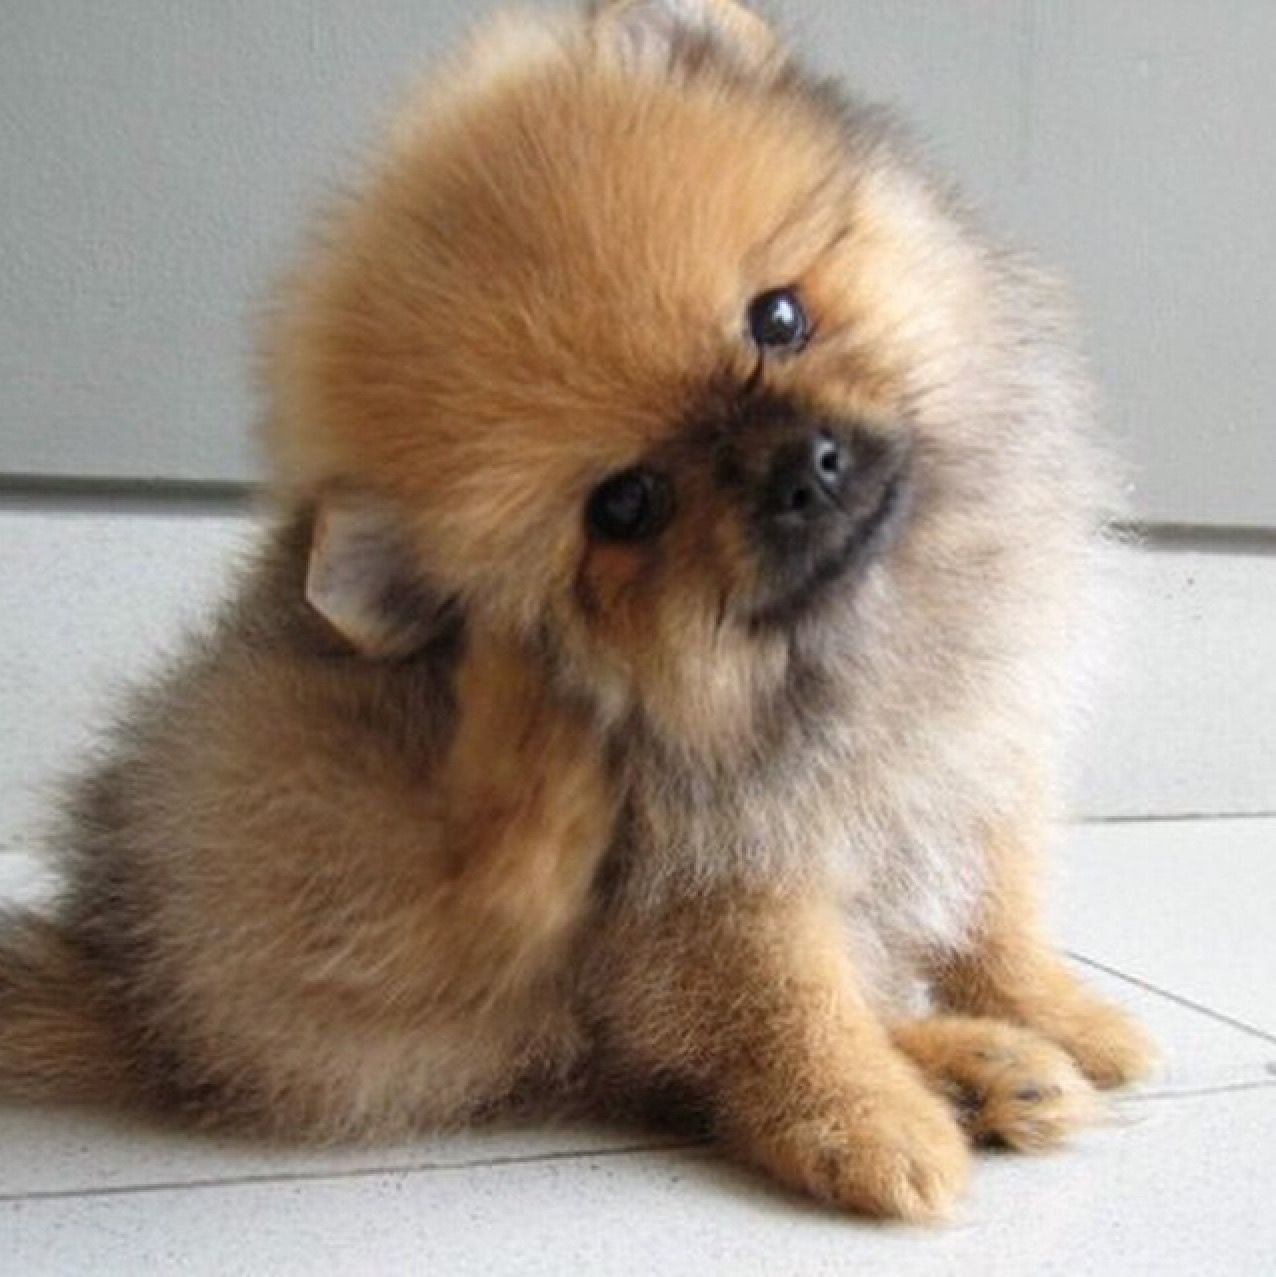 Pin By Teresa Irene Brown On Adorable Creatures Puppies Cute Baby Animals Pomeranian Puppy